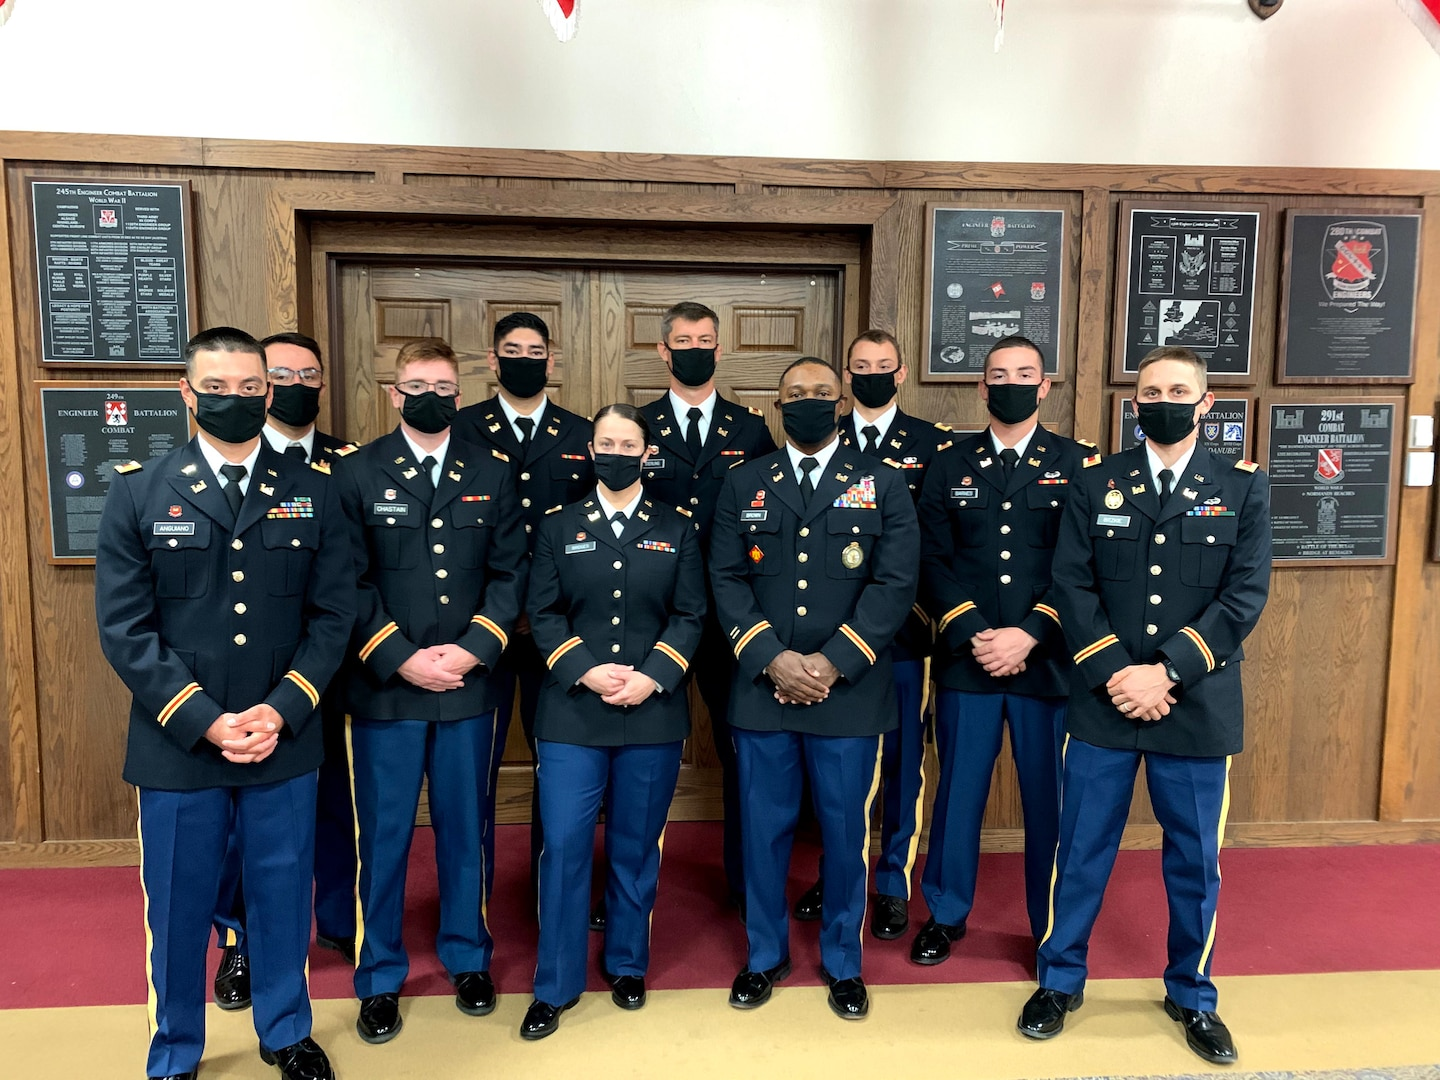 2nd Lt. Bennie Brown (fourth from right) stands with fellow engineer officer school graduates. Brown is the oldest African American officer and one of the oldest officers ever to graduate the engineer officer course at Fort Leonard Wood, Missouri. (photo illustration provided by 2nd Lt. Bennie Brown)